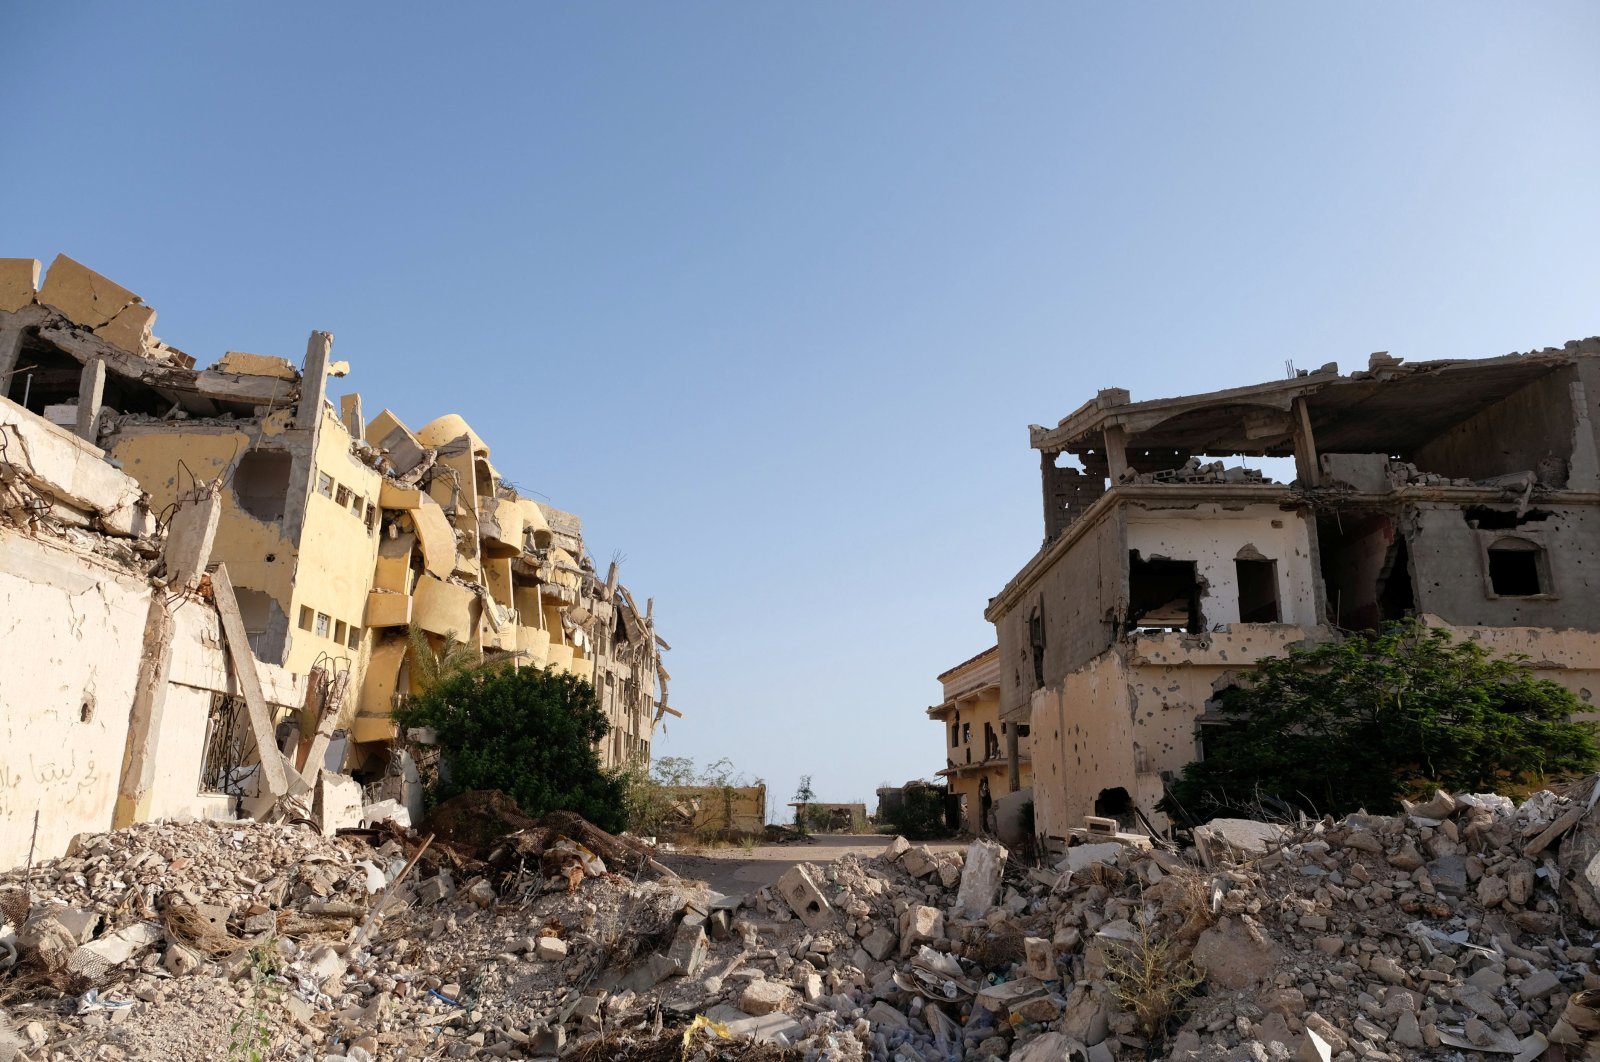 Buildings destroyed during fighting are seen in Sirte, Libya, Aug. 18, 2020. (Reuters Photo)